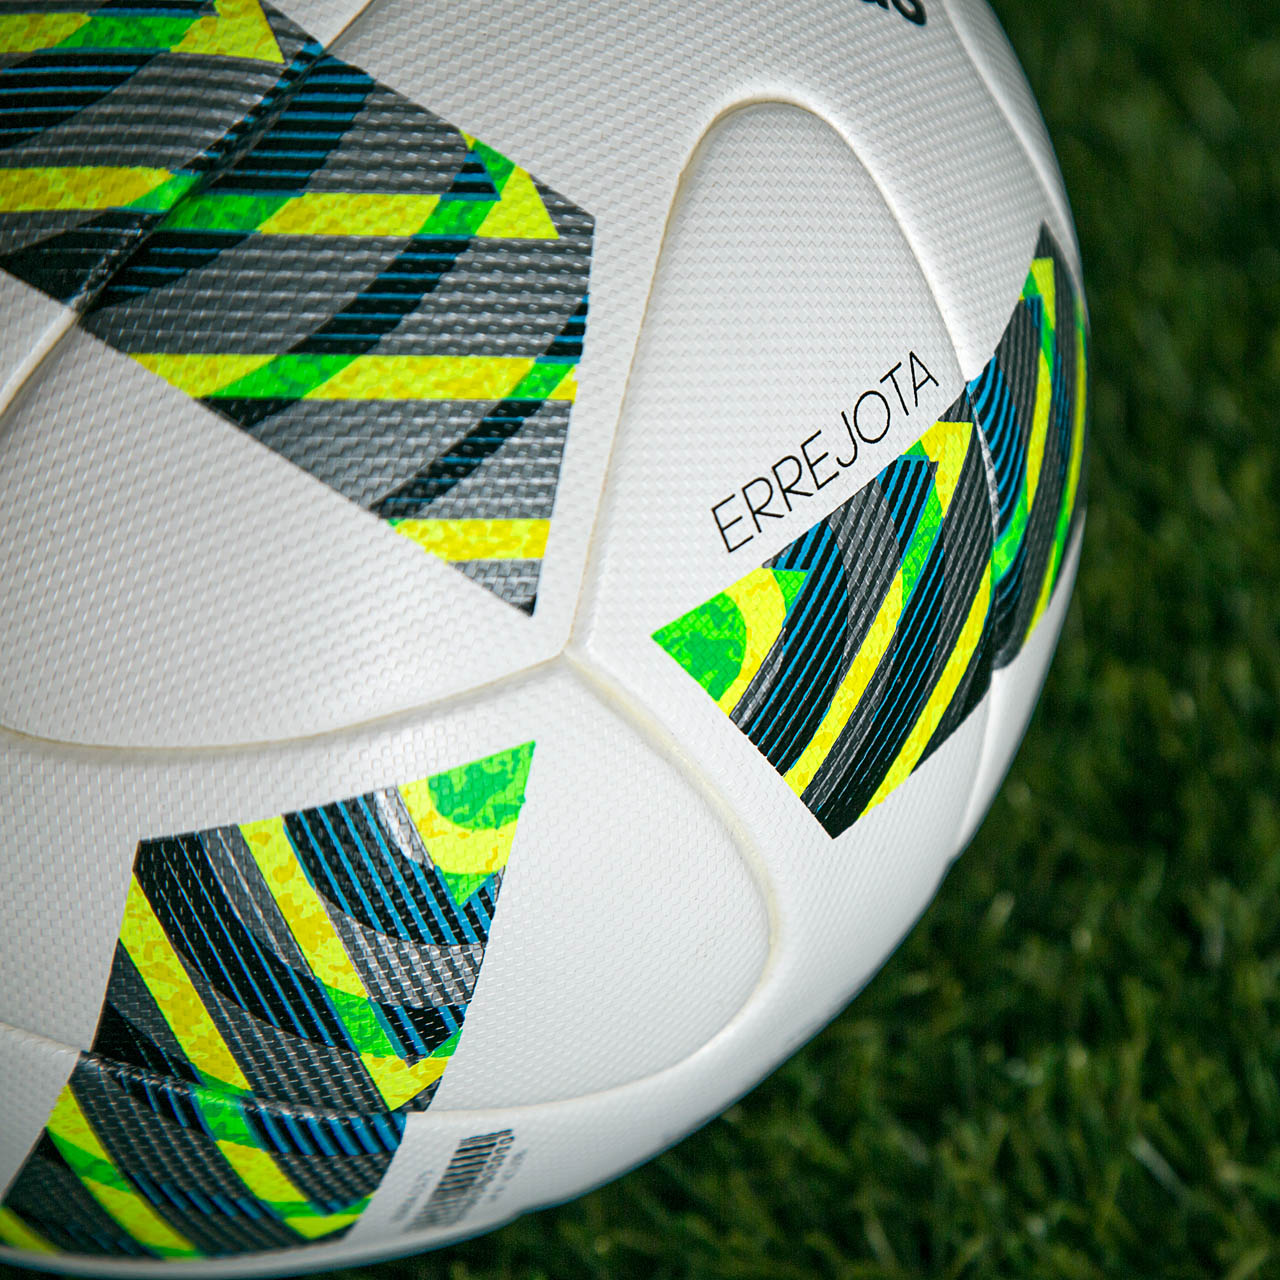 d617b4dd0 ... the Adidas Errejota Ball offers the same features as the Adidas Brazuca  ...